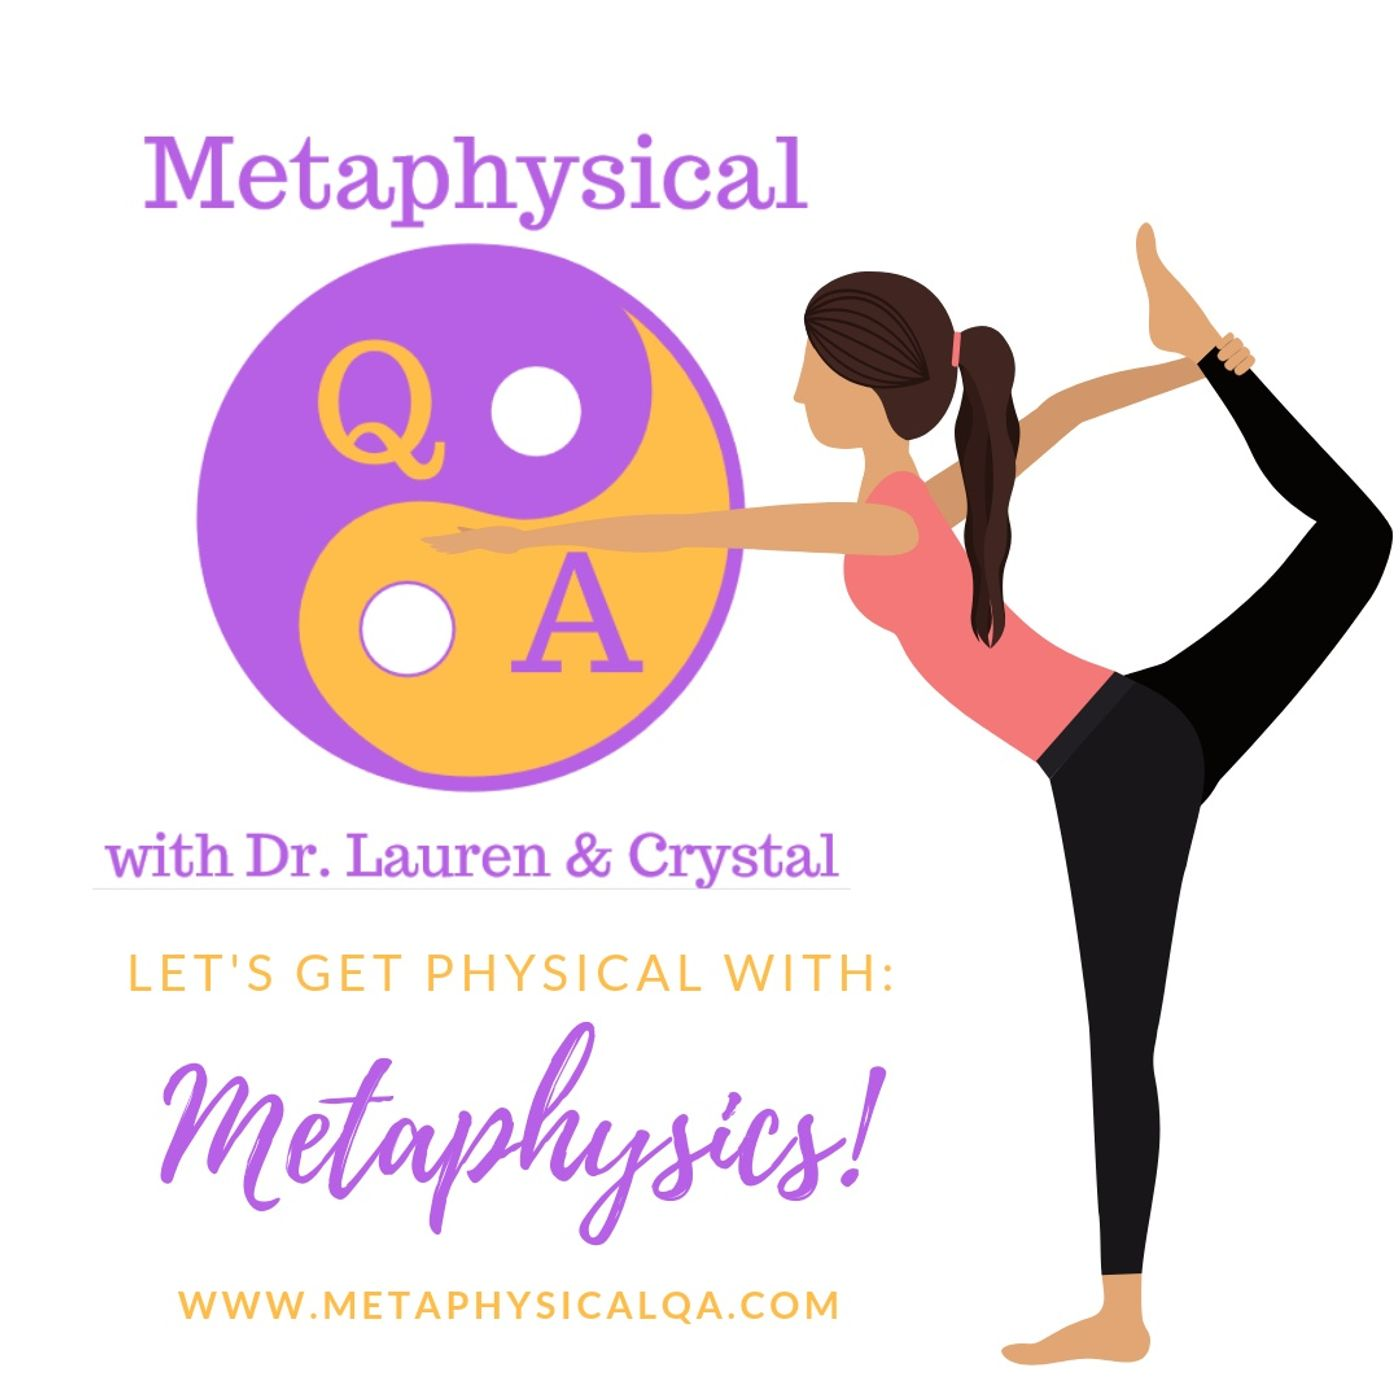 Let's Get Physical with Metaphysics!